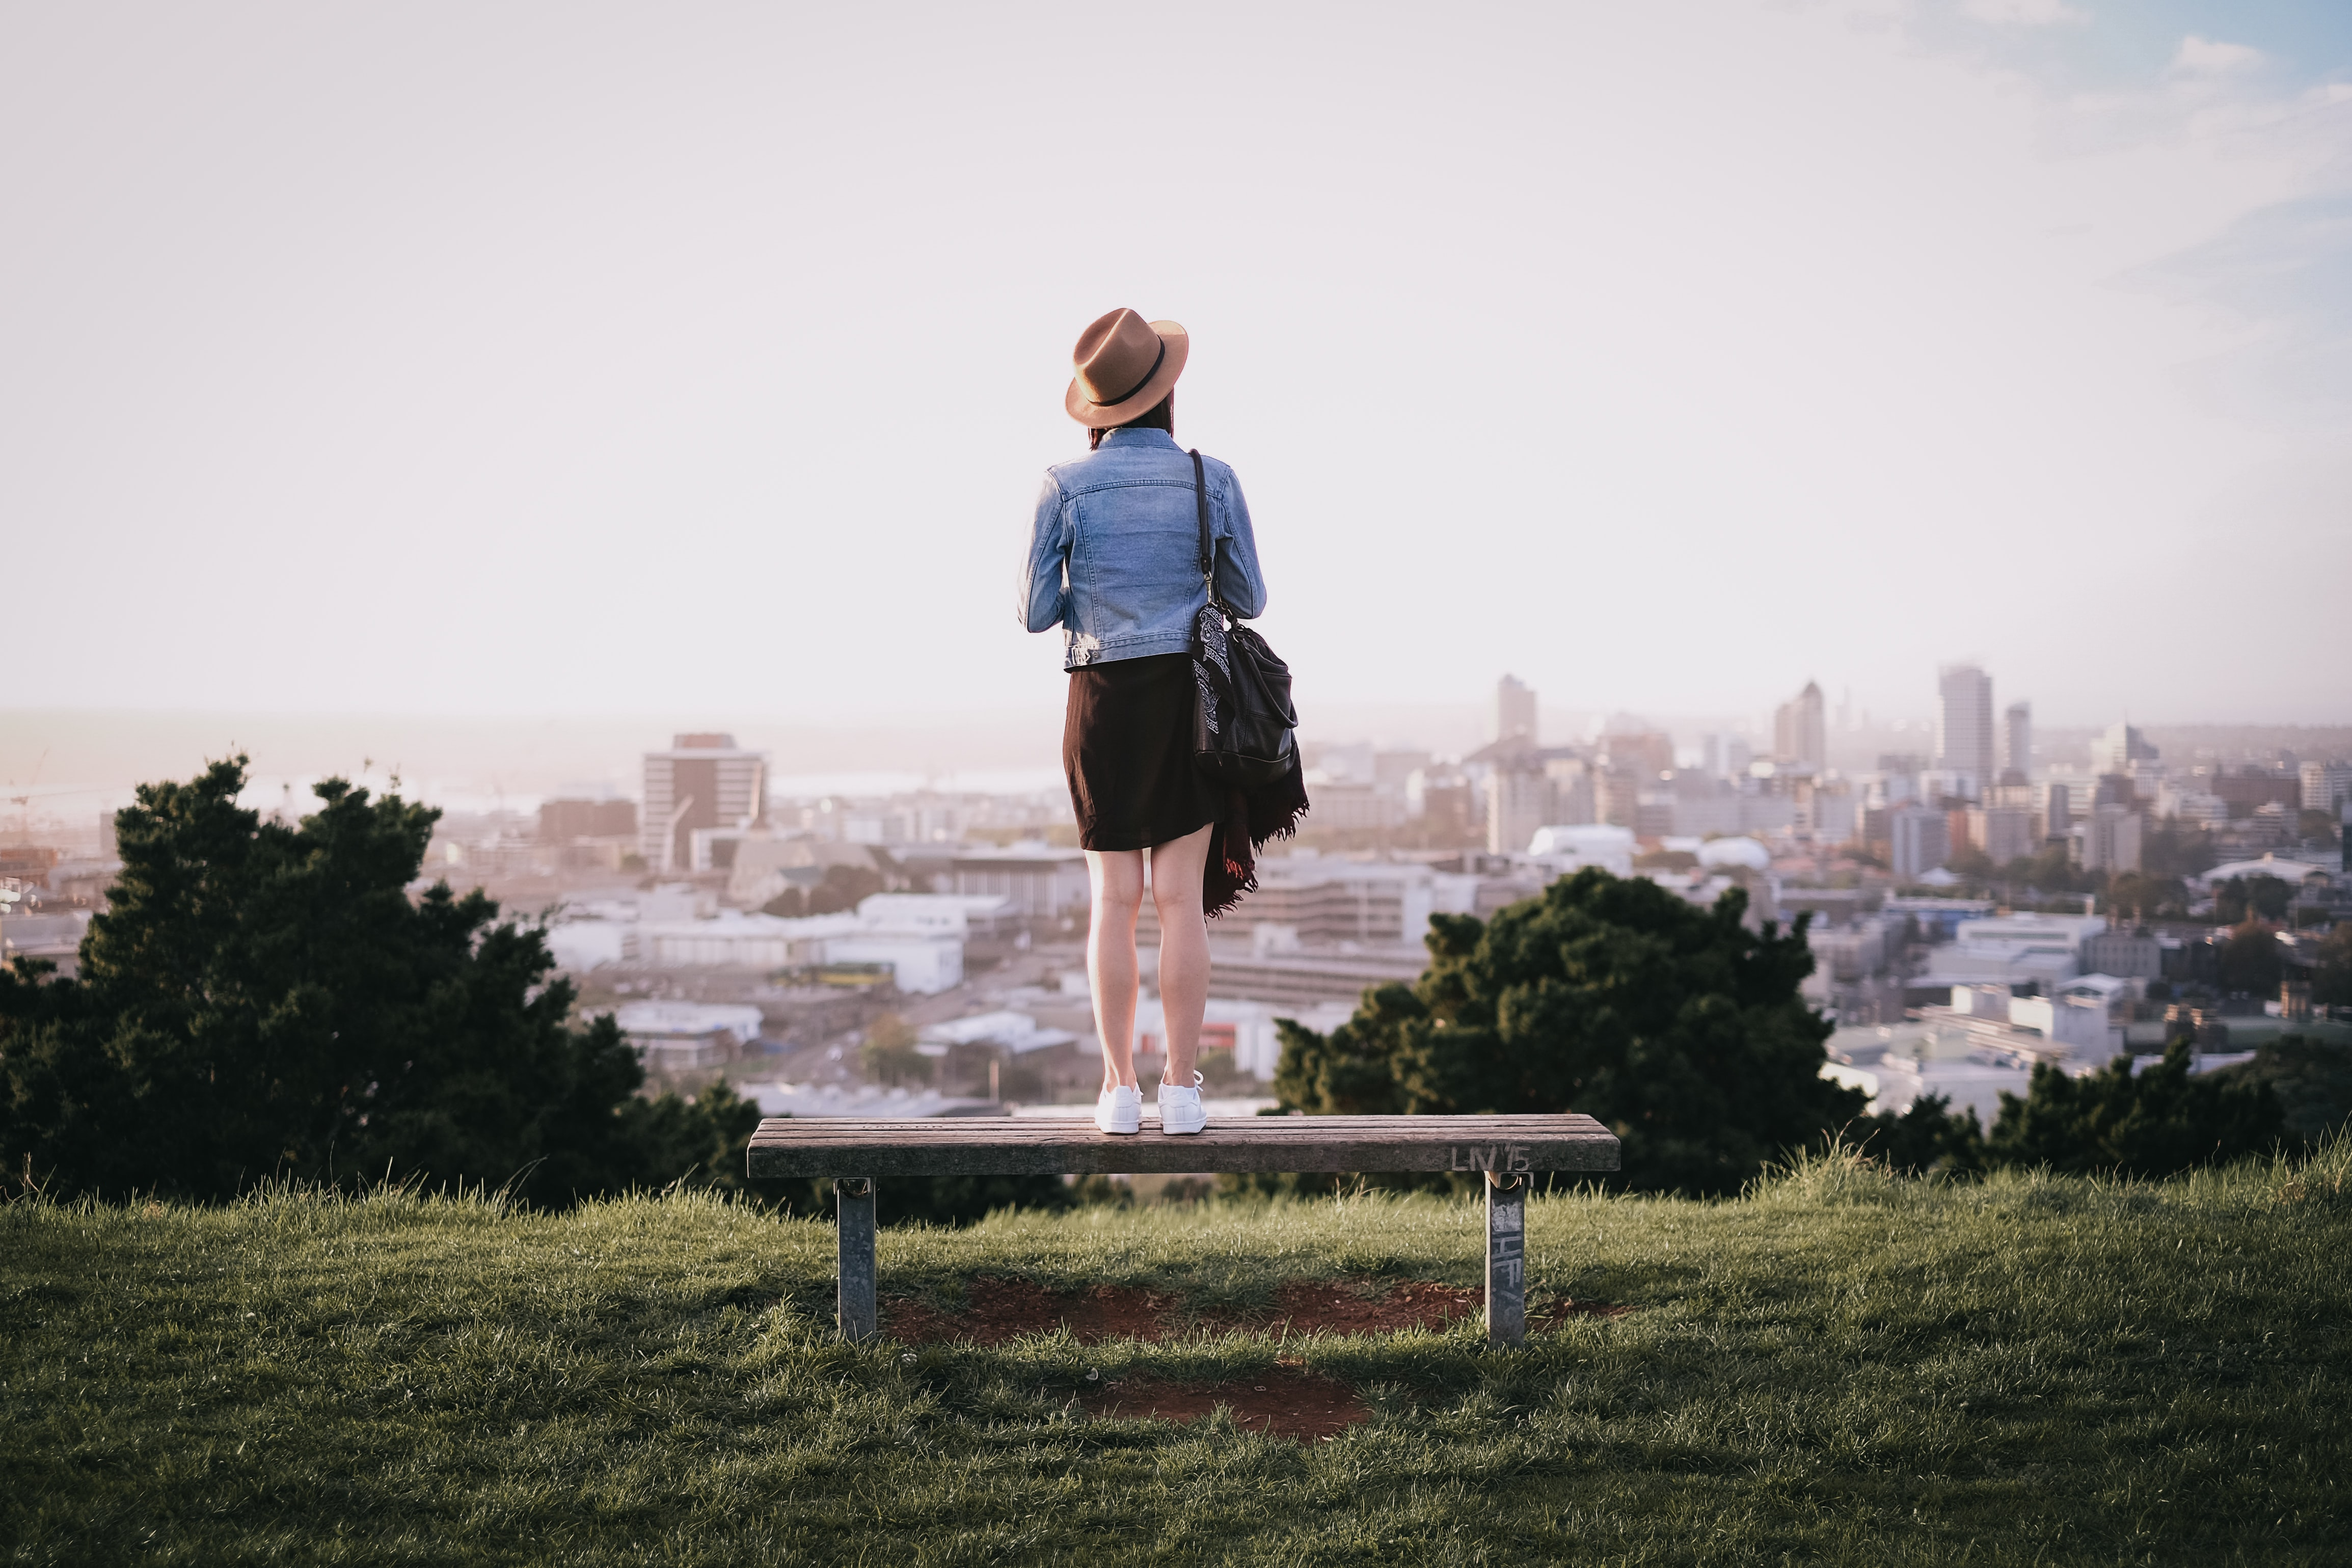 woman standing on bench facing city skyline during daytime